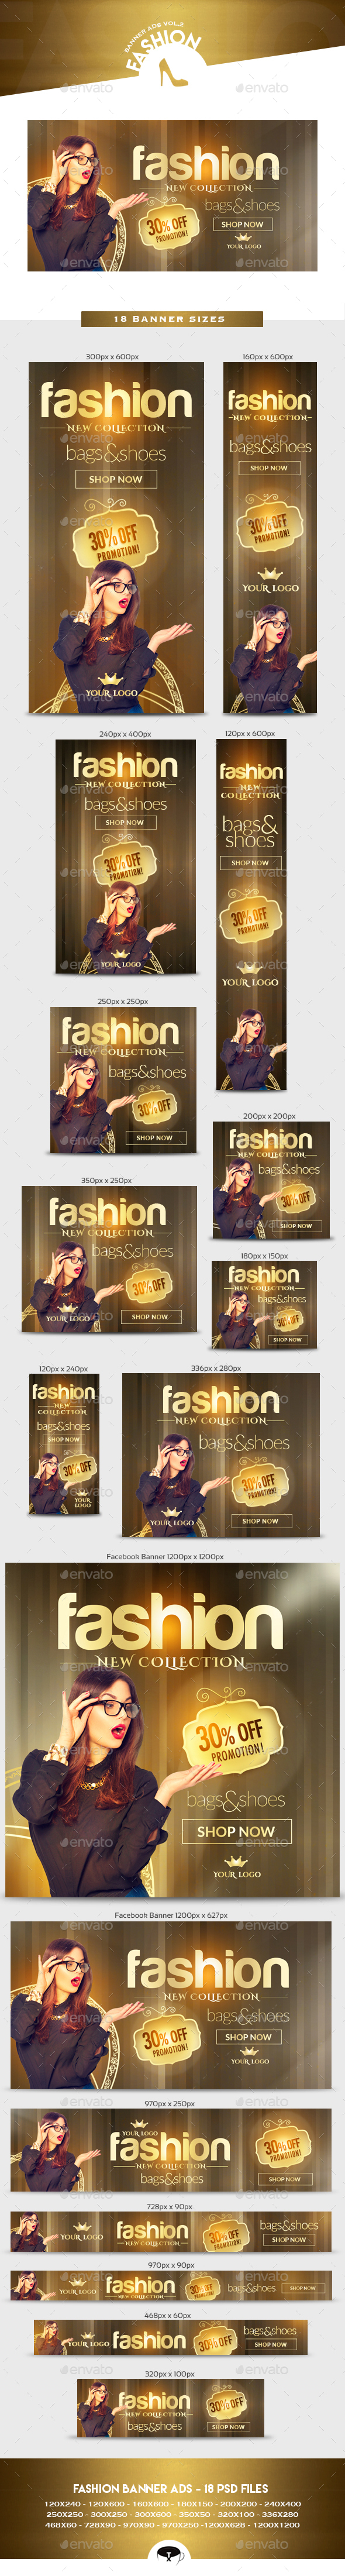 Fashion Banner Ads Vol.2 - Banners & Ads Web Elements